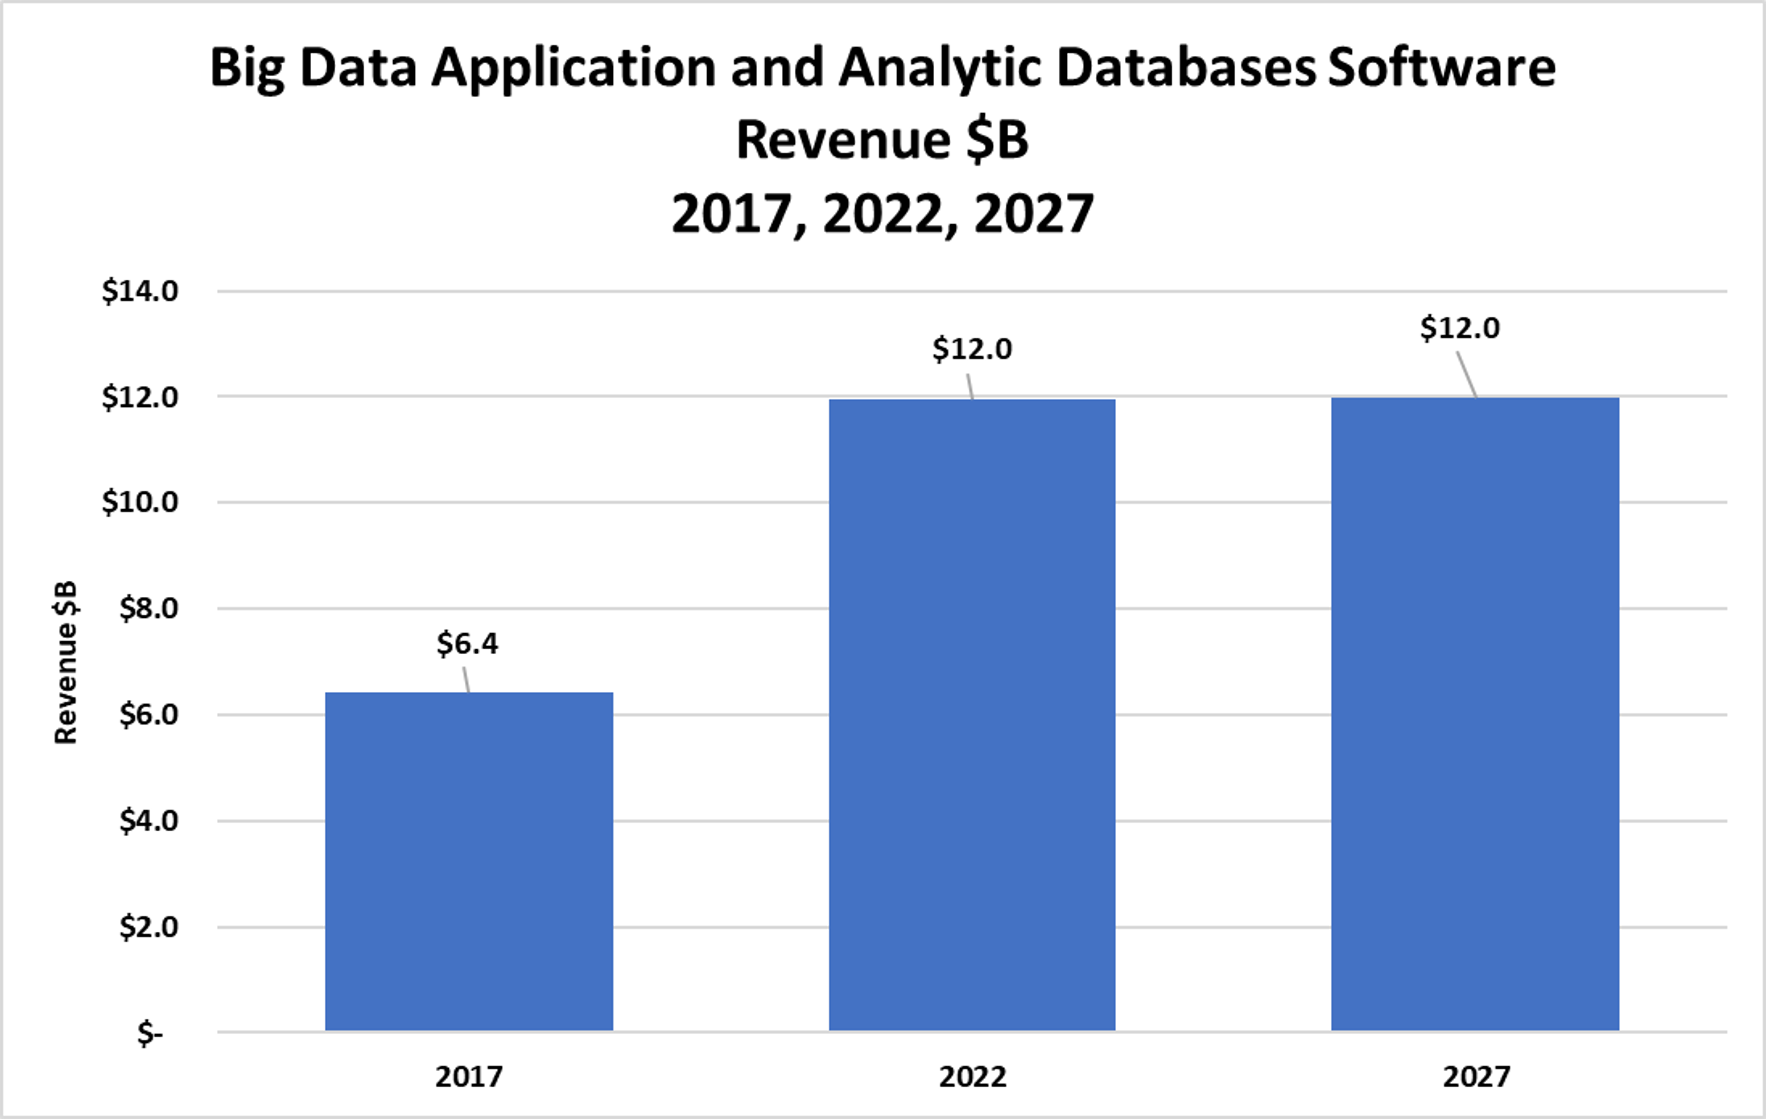 Wikibon's 2018 Big Data Analytics Trends and Forecast